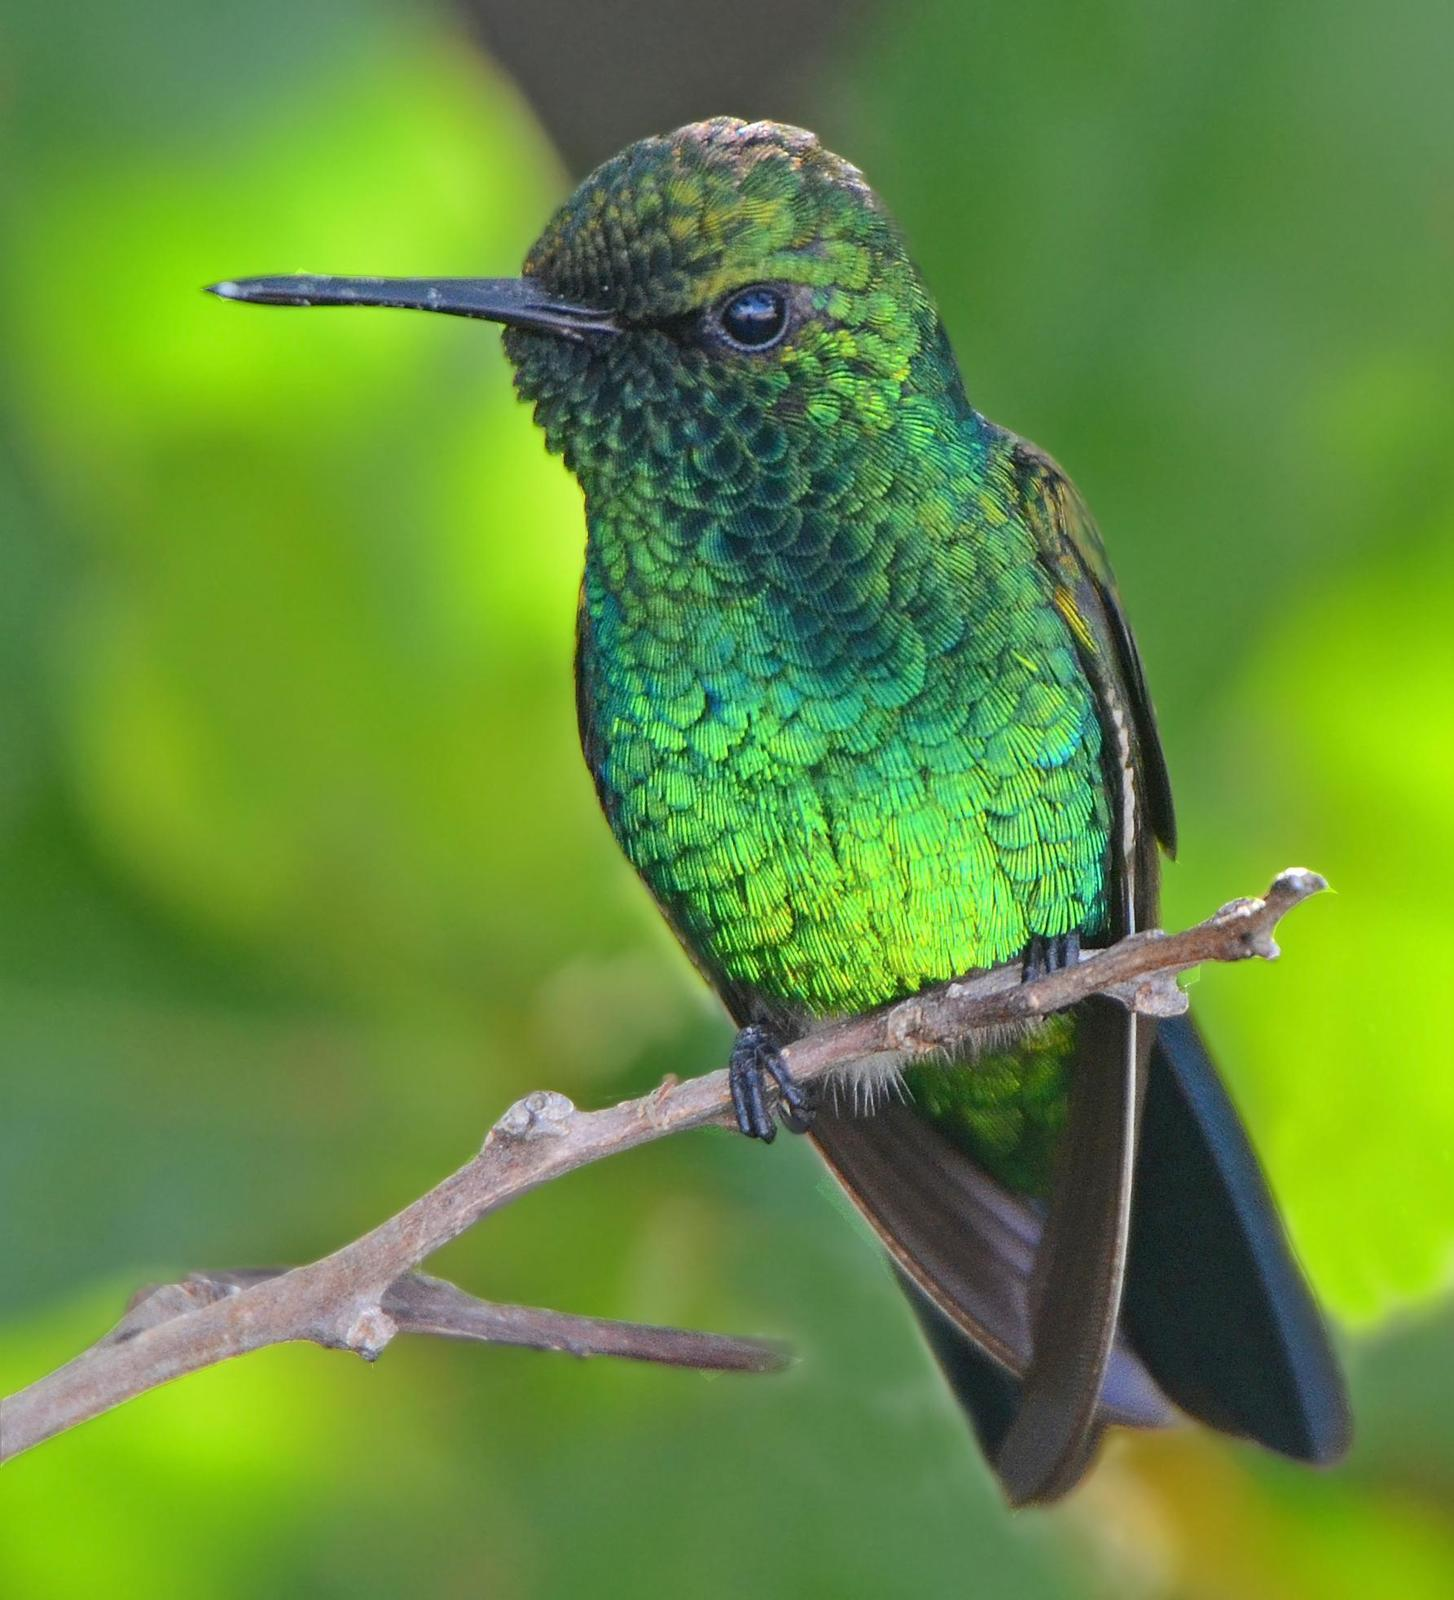 Blue-tailed Emerald Photo by Steven Mlodinow